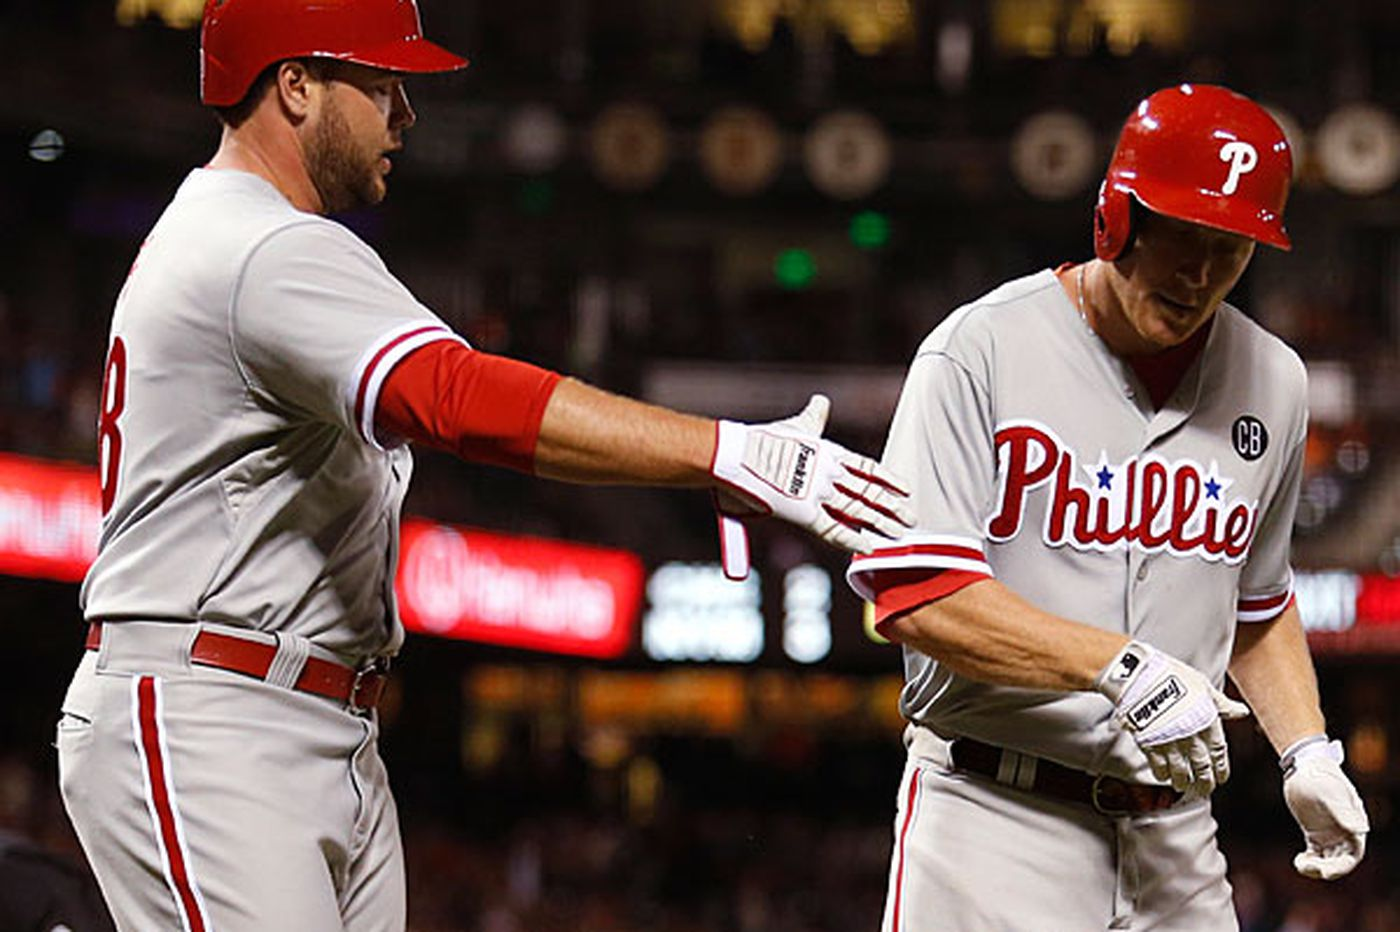 Phillies rally to beat Giants in 10 innings